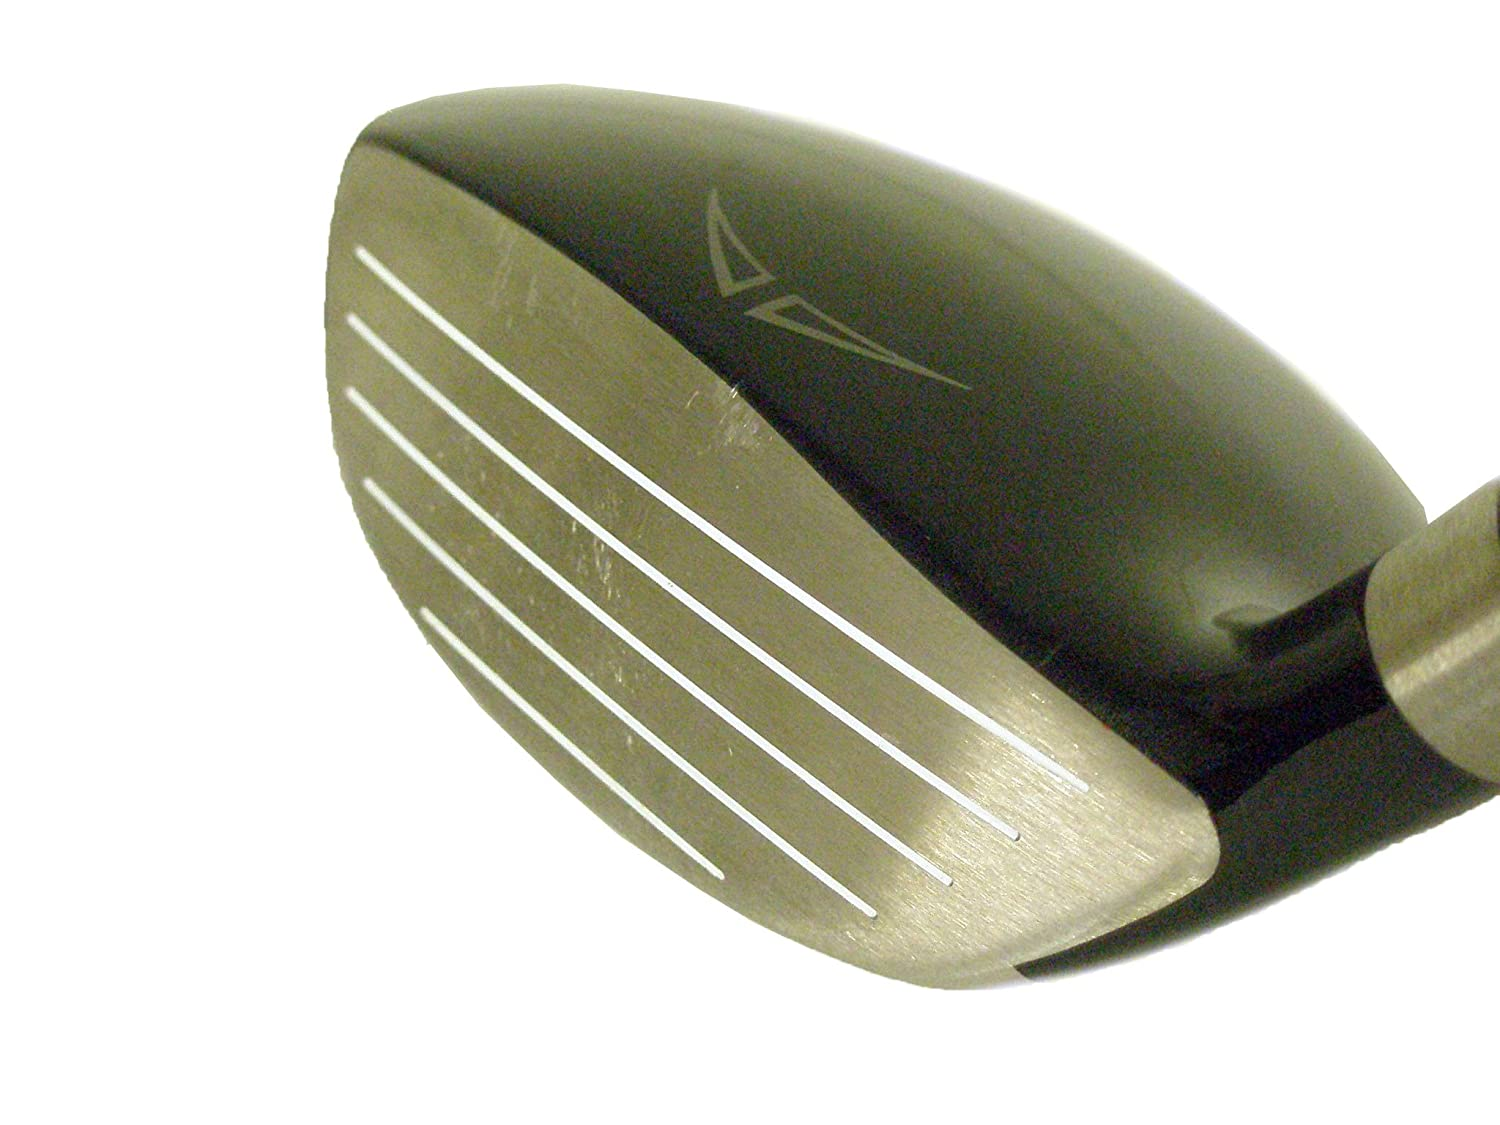 Ping G20 3-wood, Rh 15 Degree, Graphite, Regular Flex